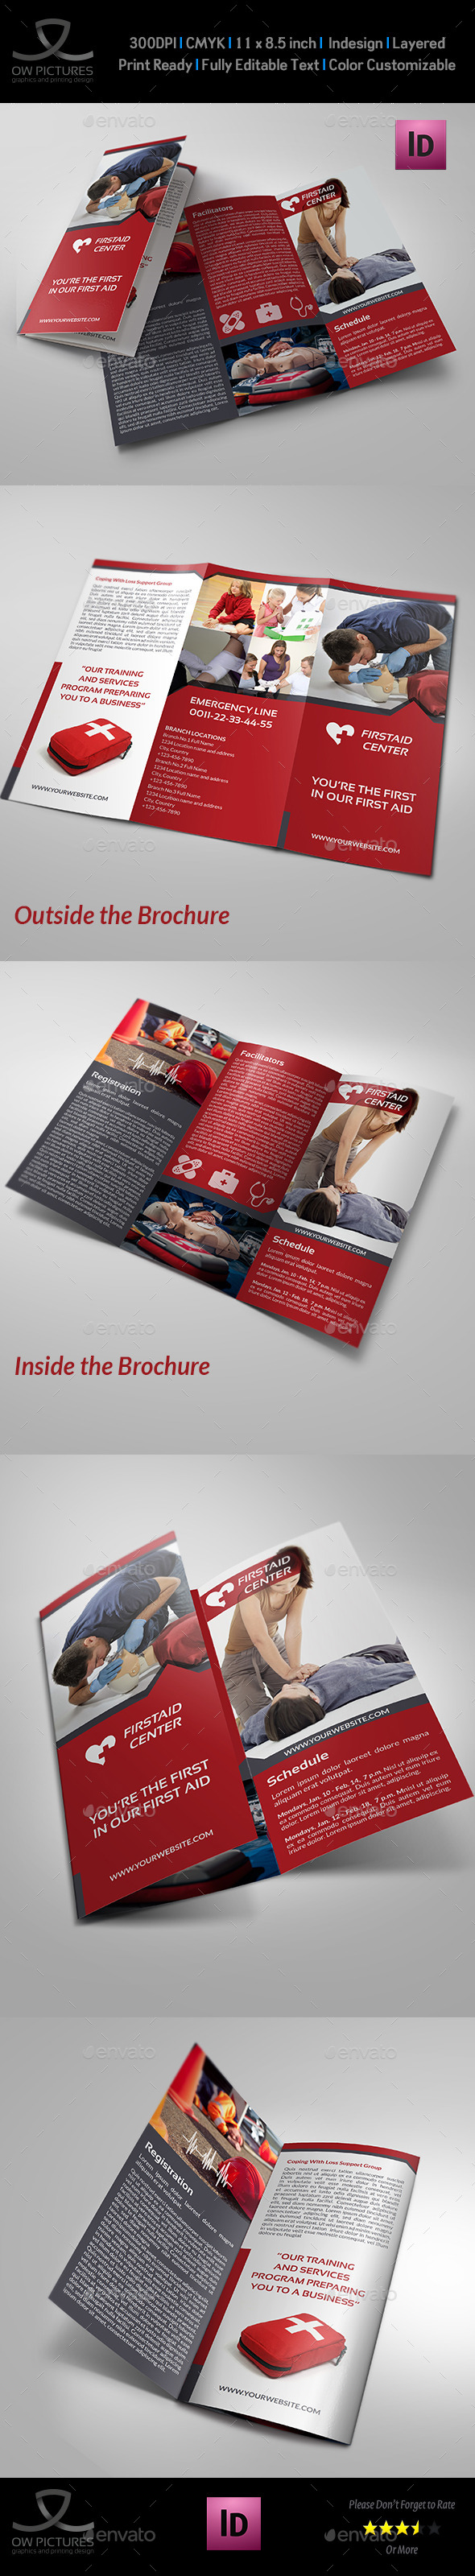 aids brochure template - free personal training flyer templates